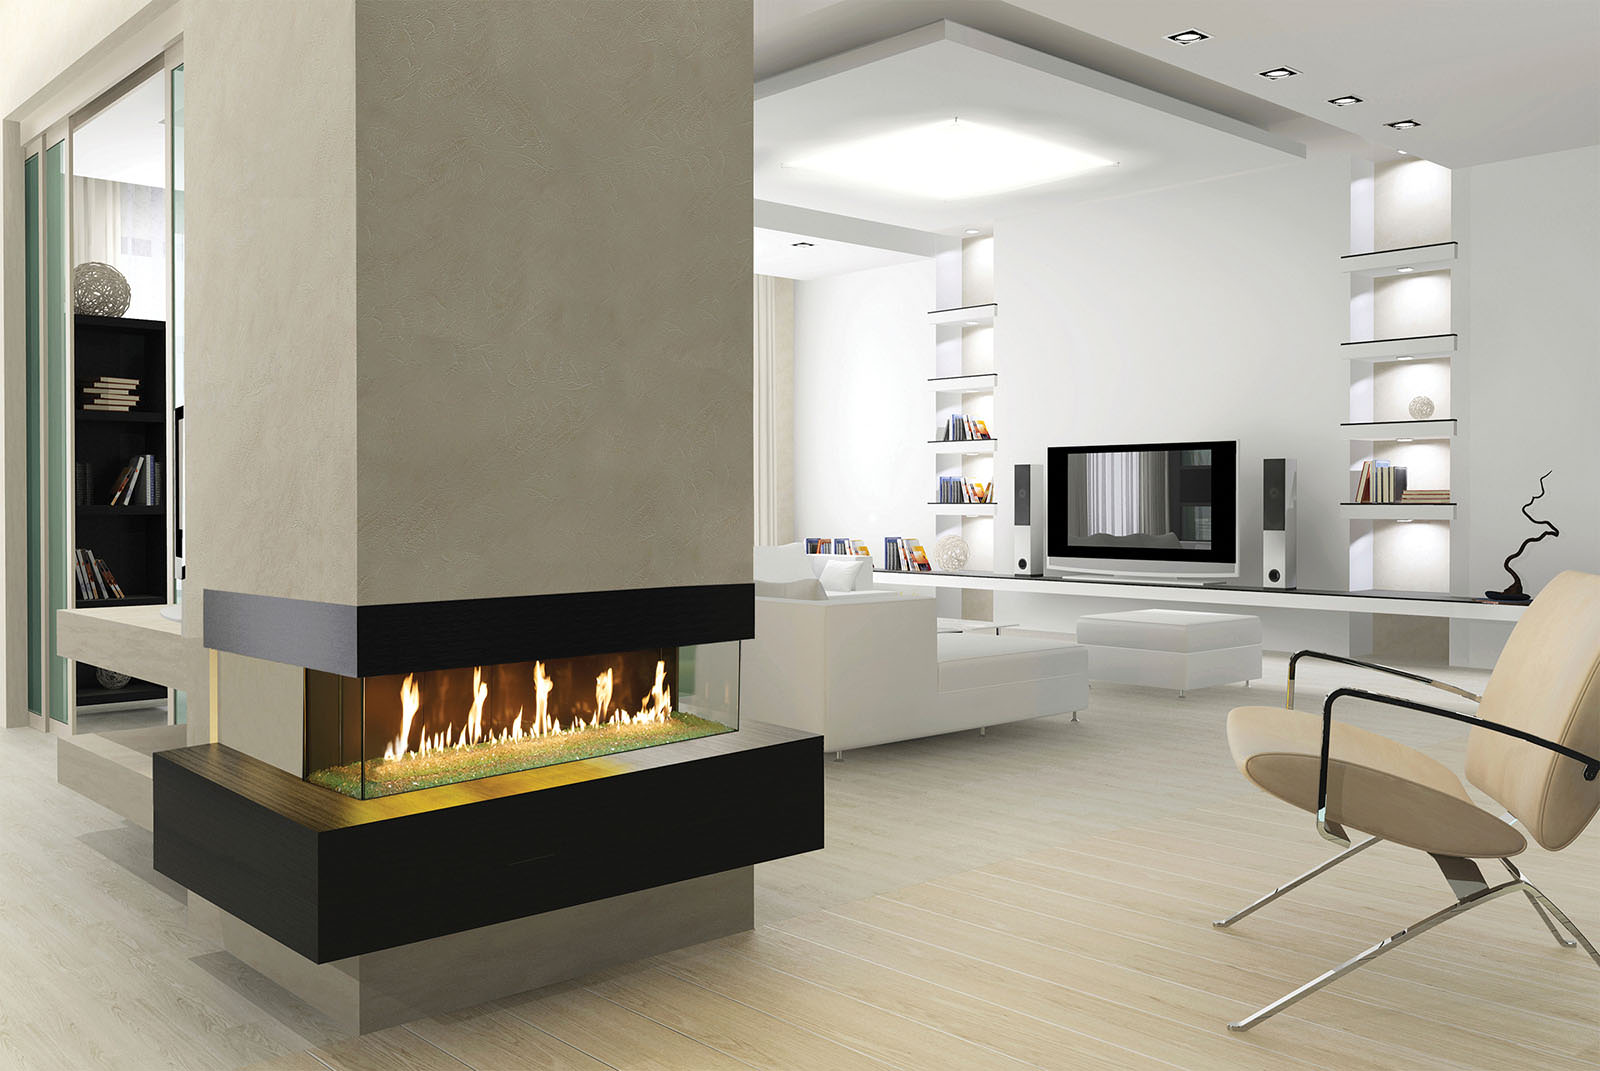 Davinci Gas Fireplace Bay 72x12 109136